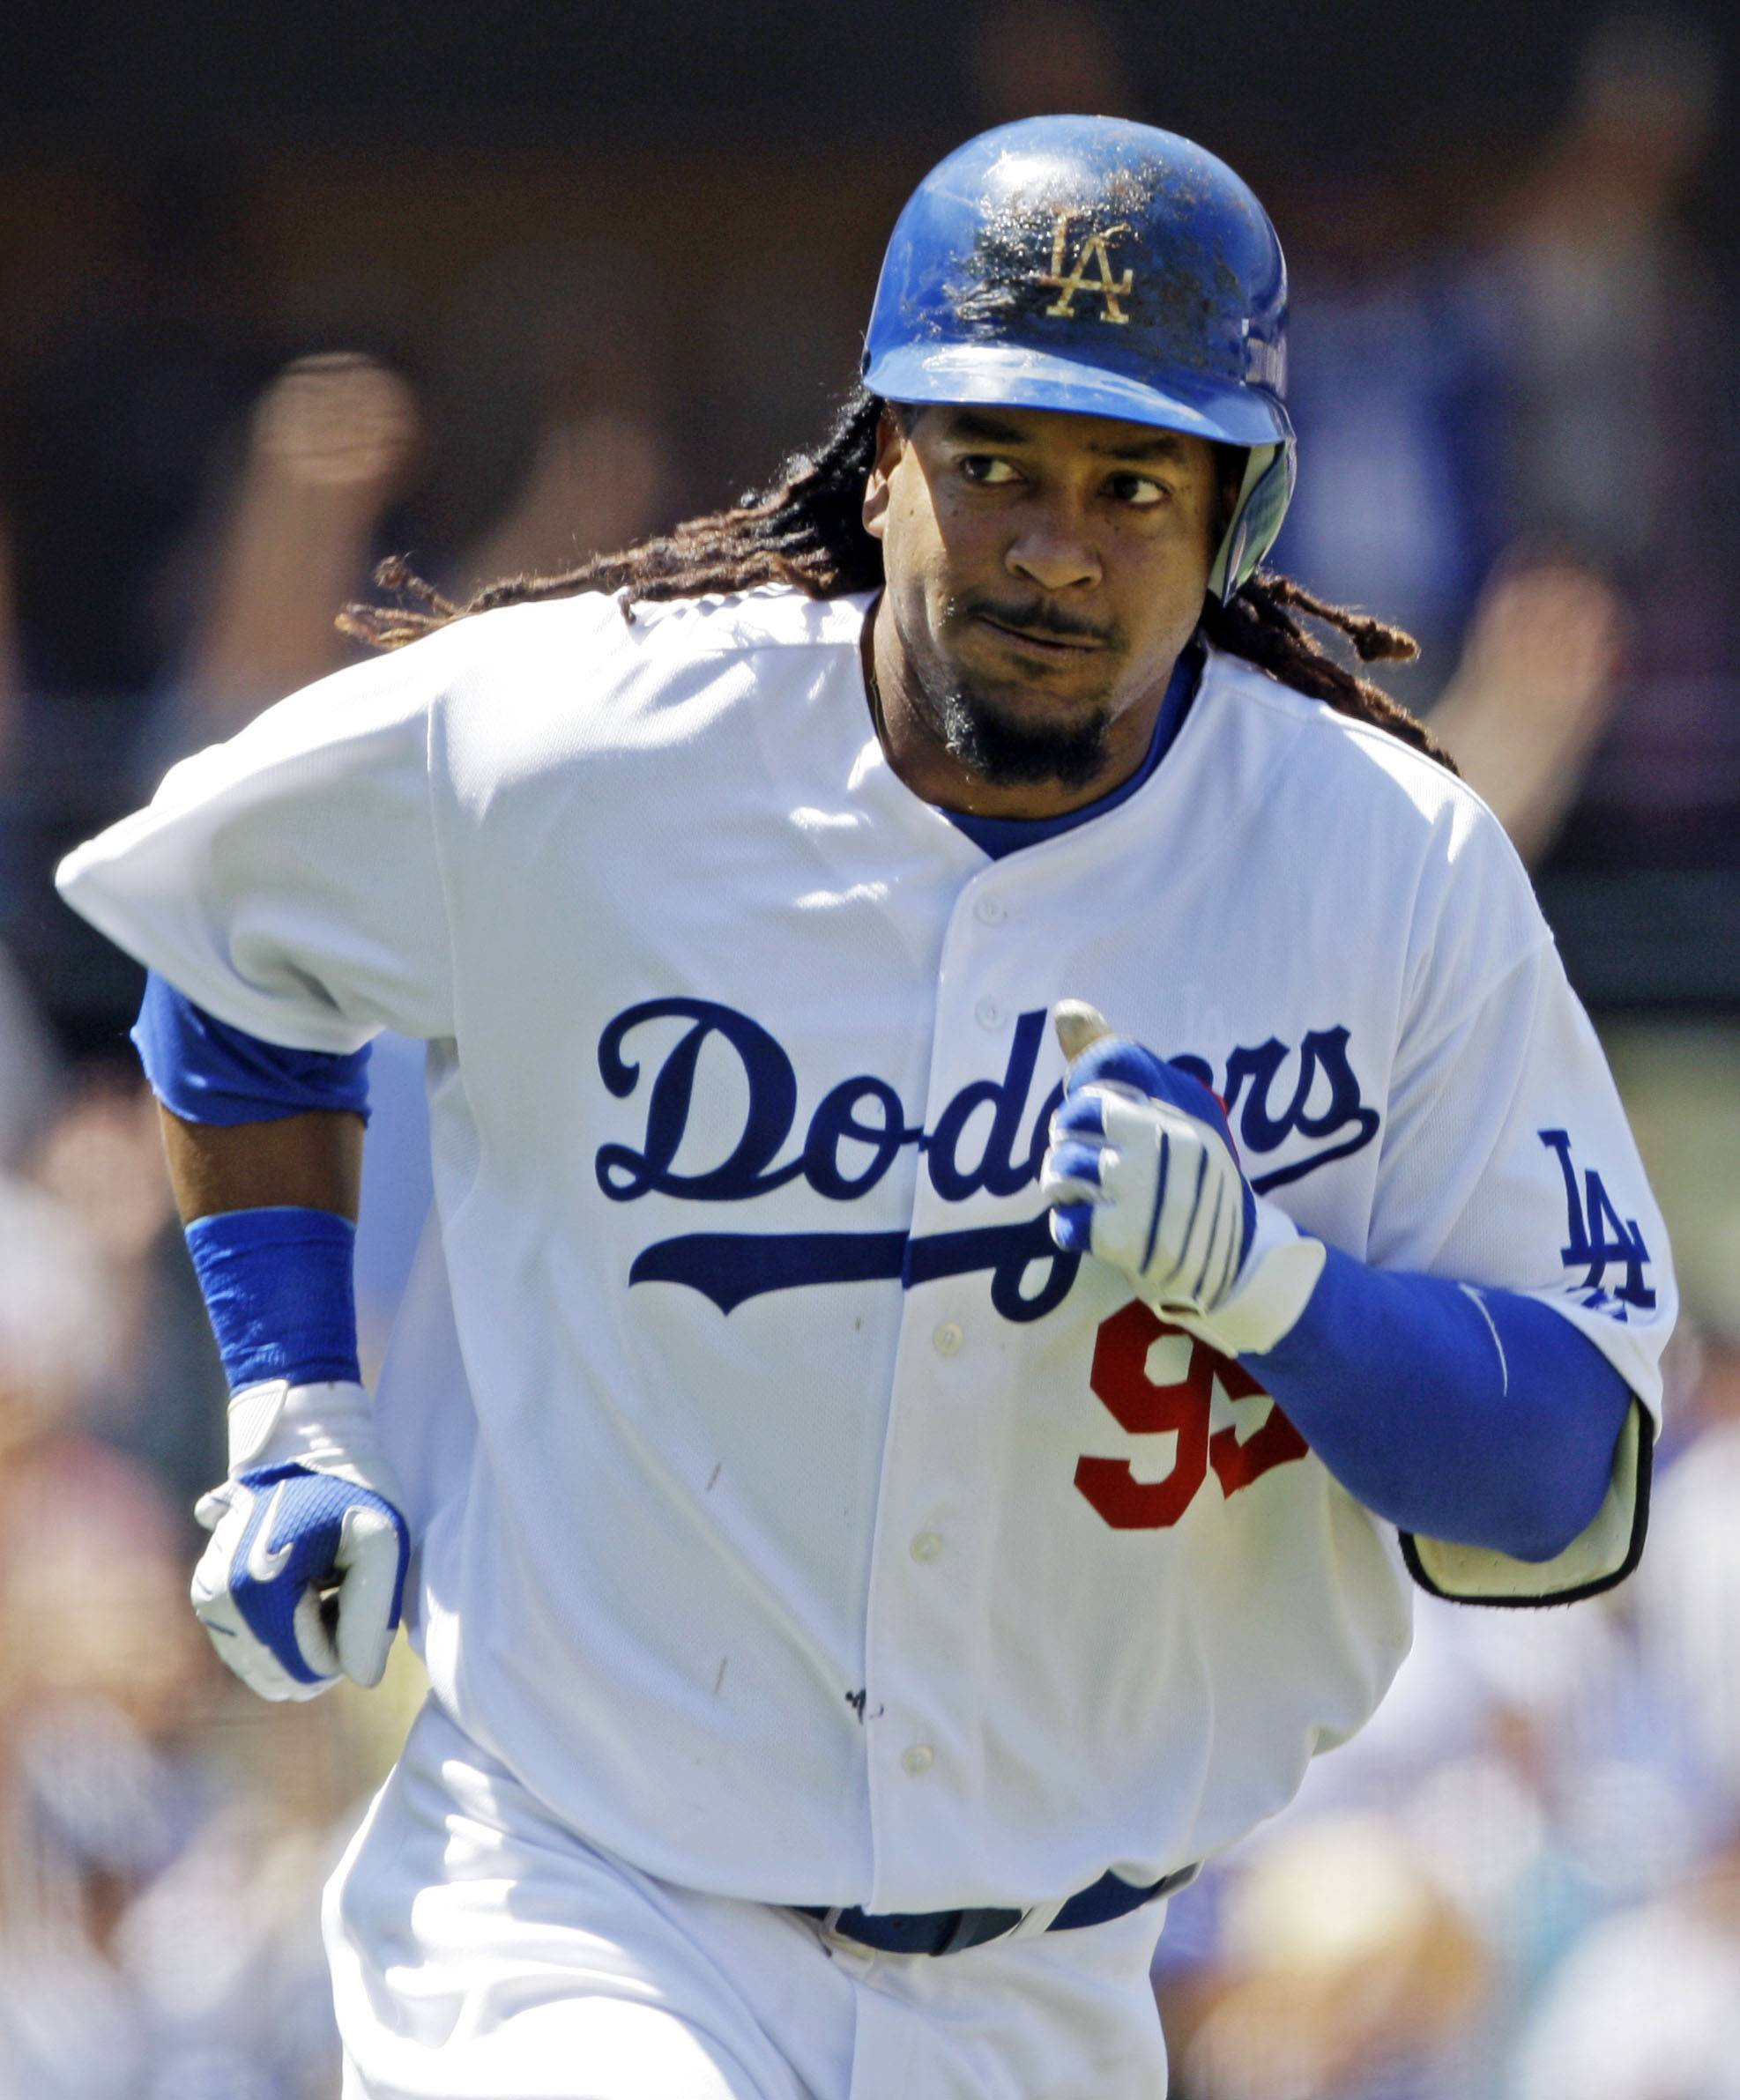 Manny Ramirez signed a minor-league deal Sunday with the Cubs on Sunday and will be a player-coach at Triple-A Iowa after he gets some at-bats in extended spring training.